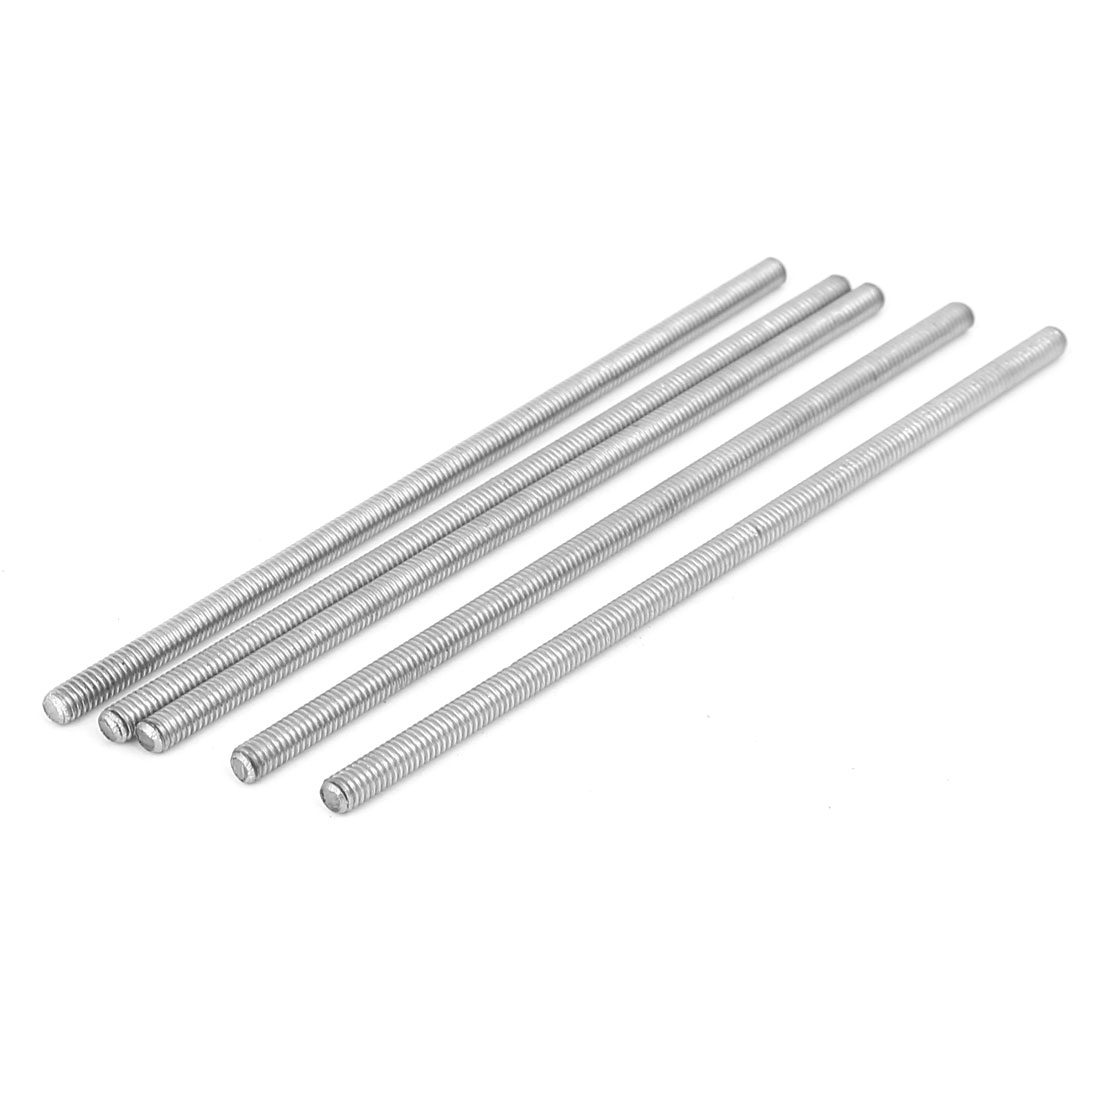 M4 x 100mm 304 Stainless Steel Fully Threaded Rod Bar Studs Silver Tone 5 Pcs